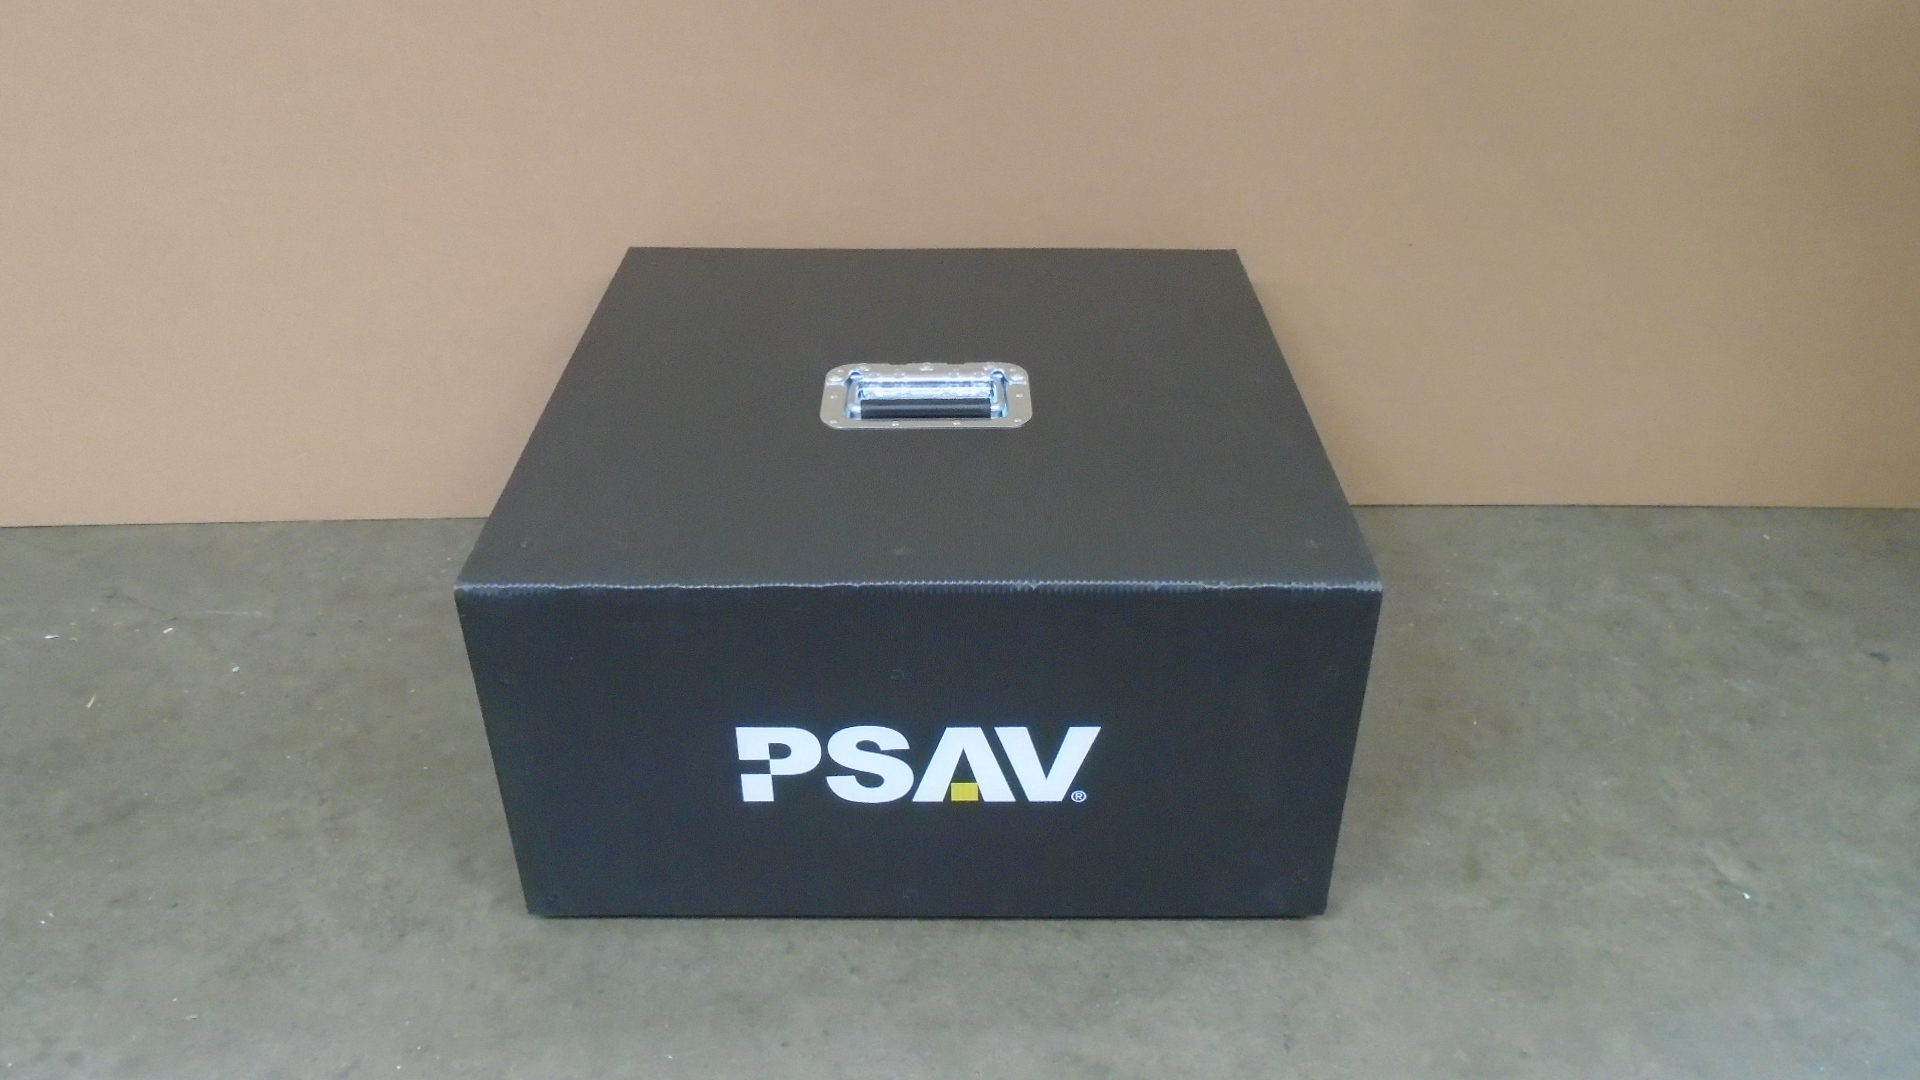 Print # 7369 - Custom Corrugated Box for Hewlett Packard LaserJet Pro M402N Printer Kit By Nelson Case Corp